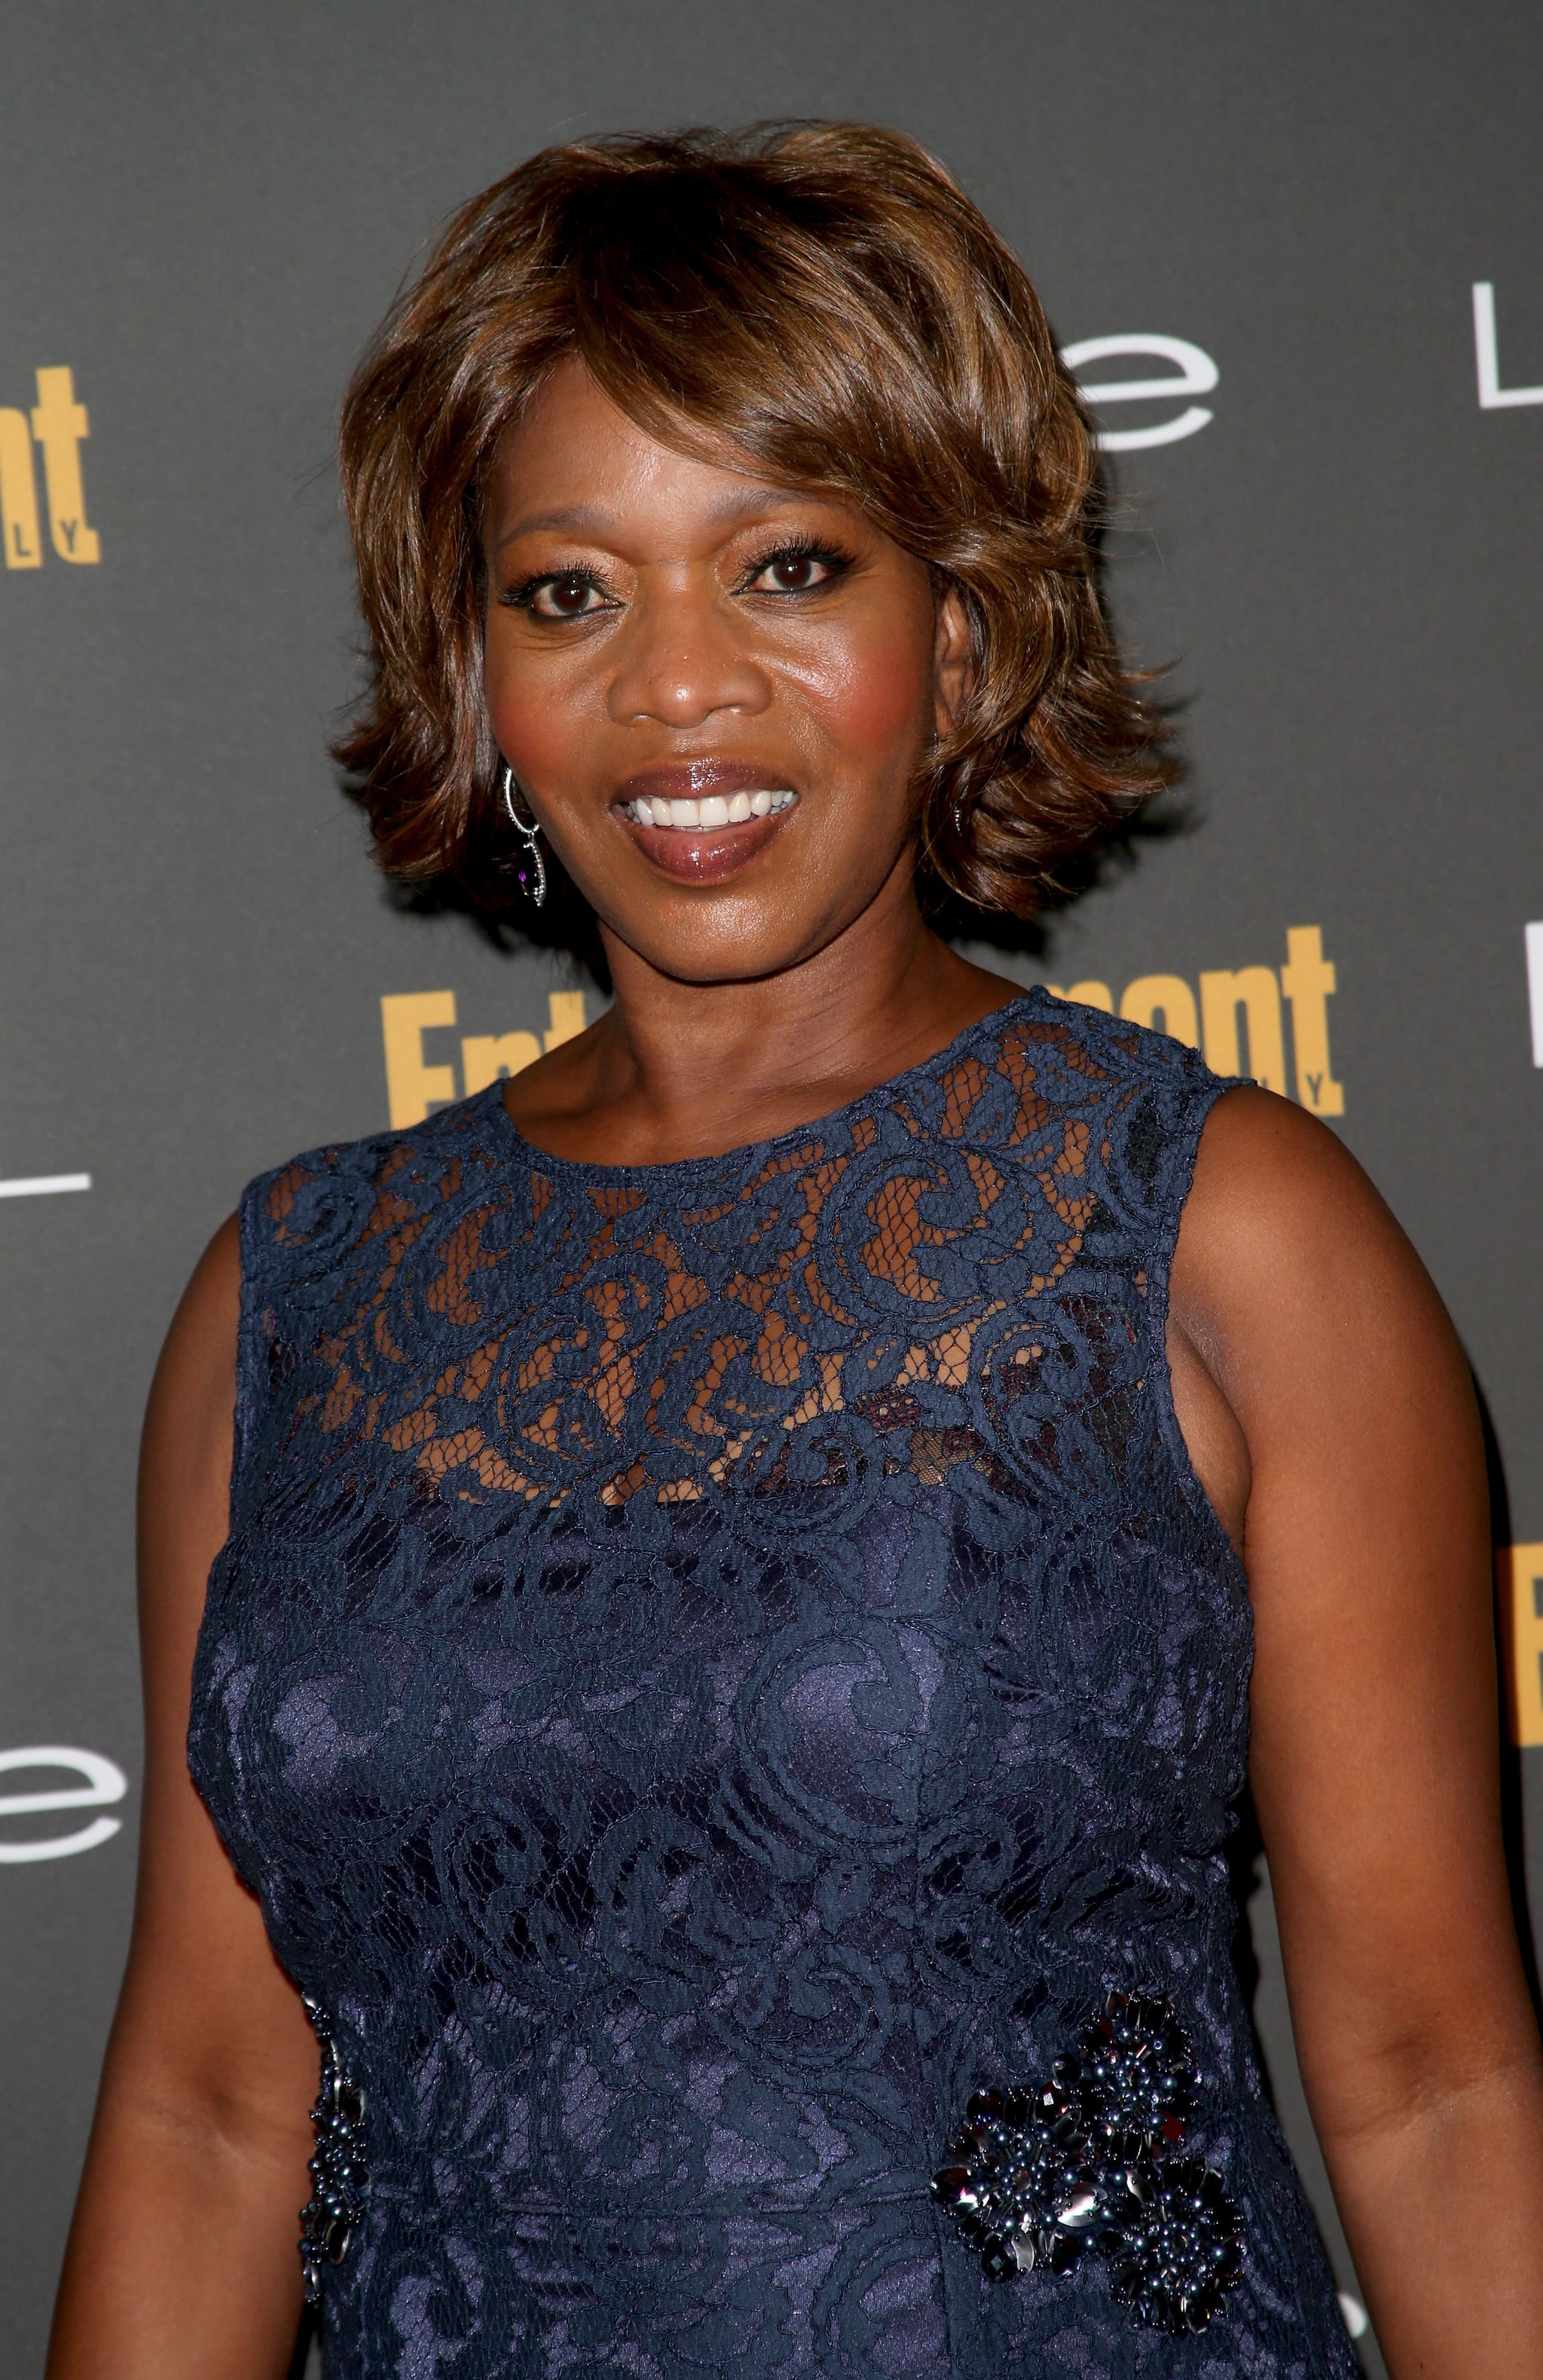 Alfre Woodard looked beautiful with berry lips at Entertainment Weekly's pre-Emmys party.